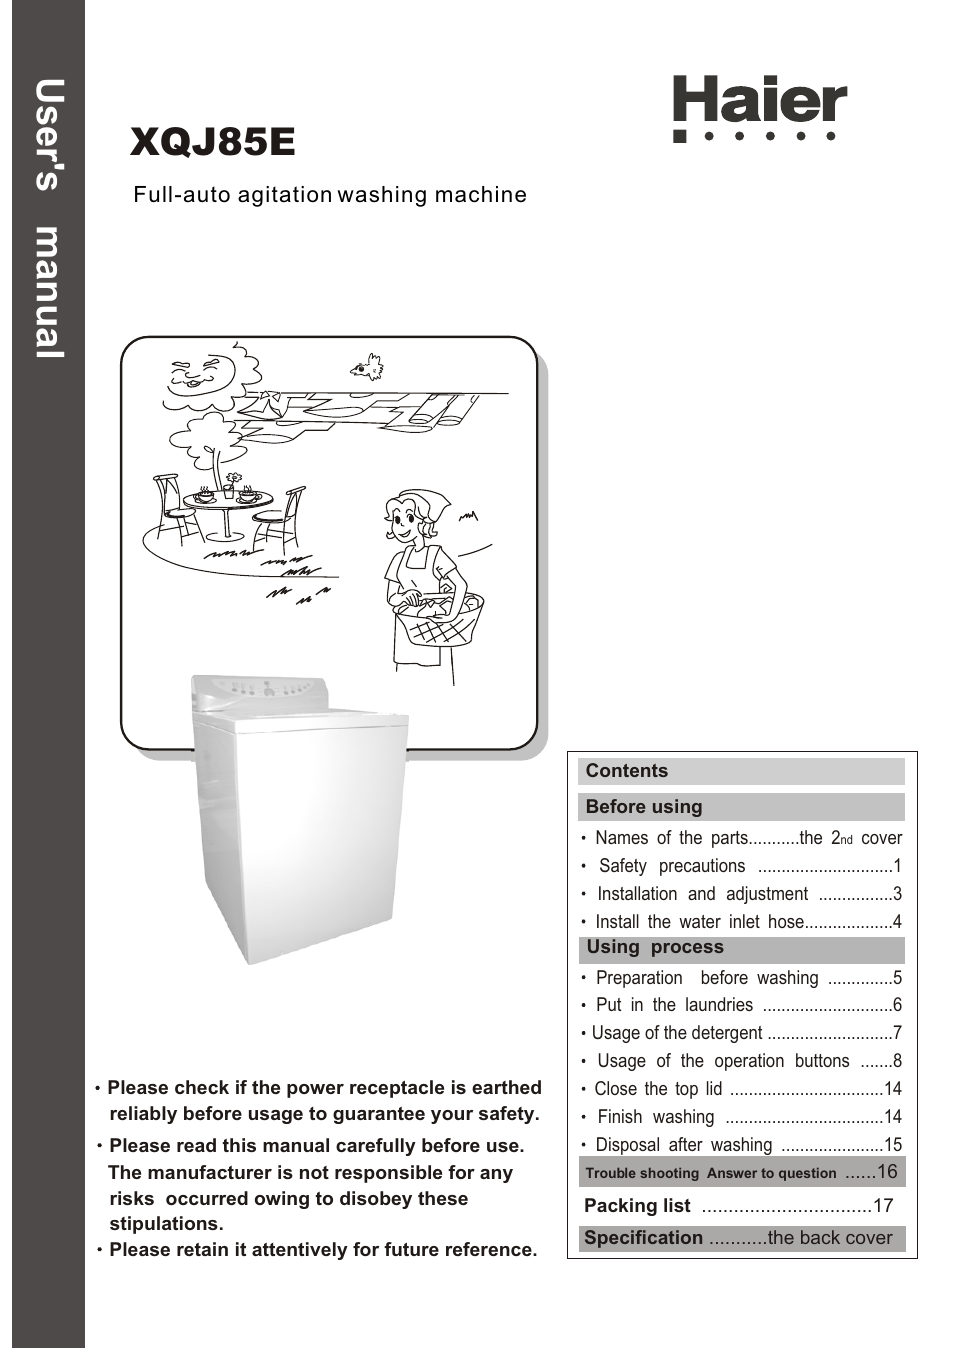 Haier Xqj85e User Manual 20 Pages Also For Full Auto Agitation Washing Machine Wiring Diagram